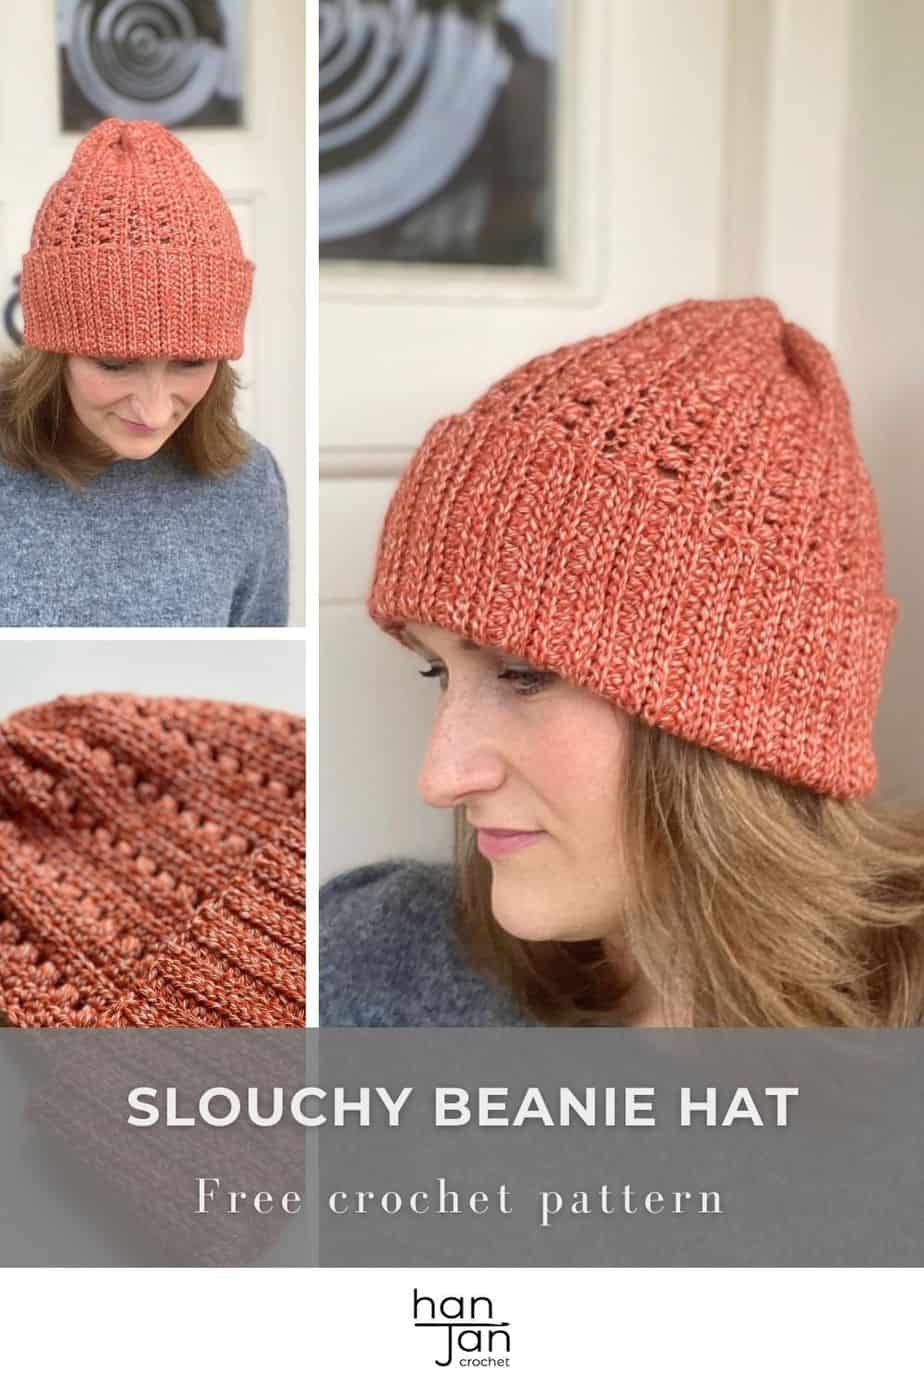 three images of slouchy crochet hat pattern being worn by woman and stitch detail